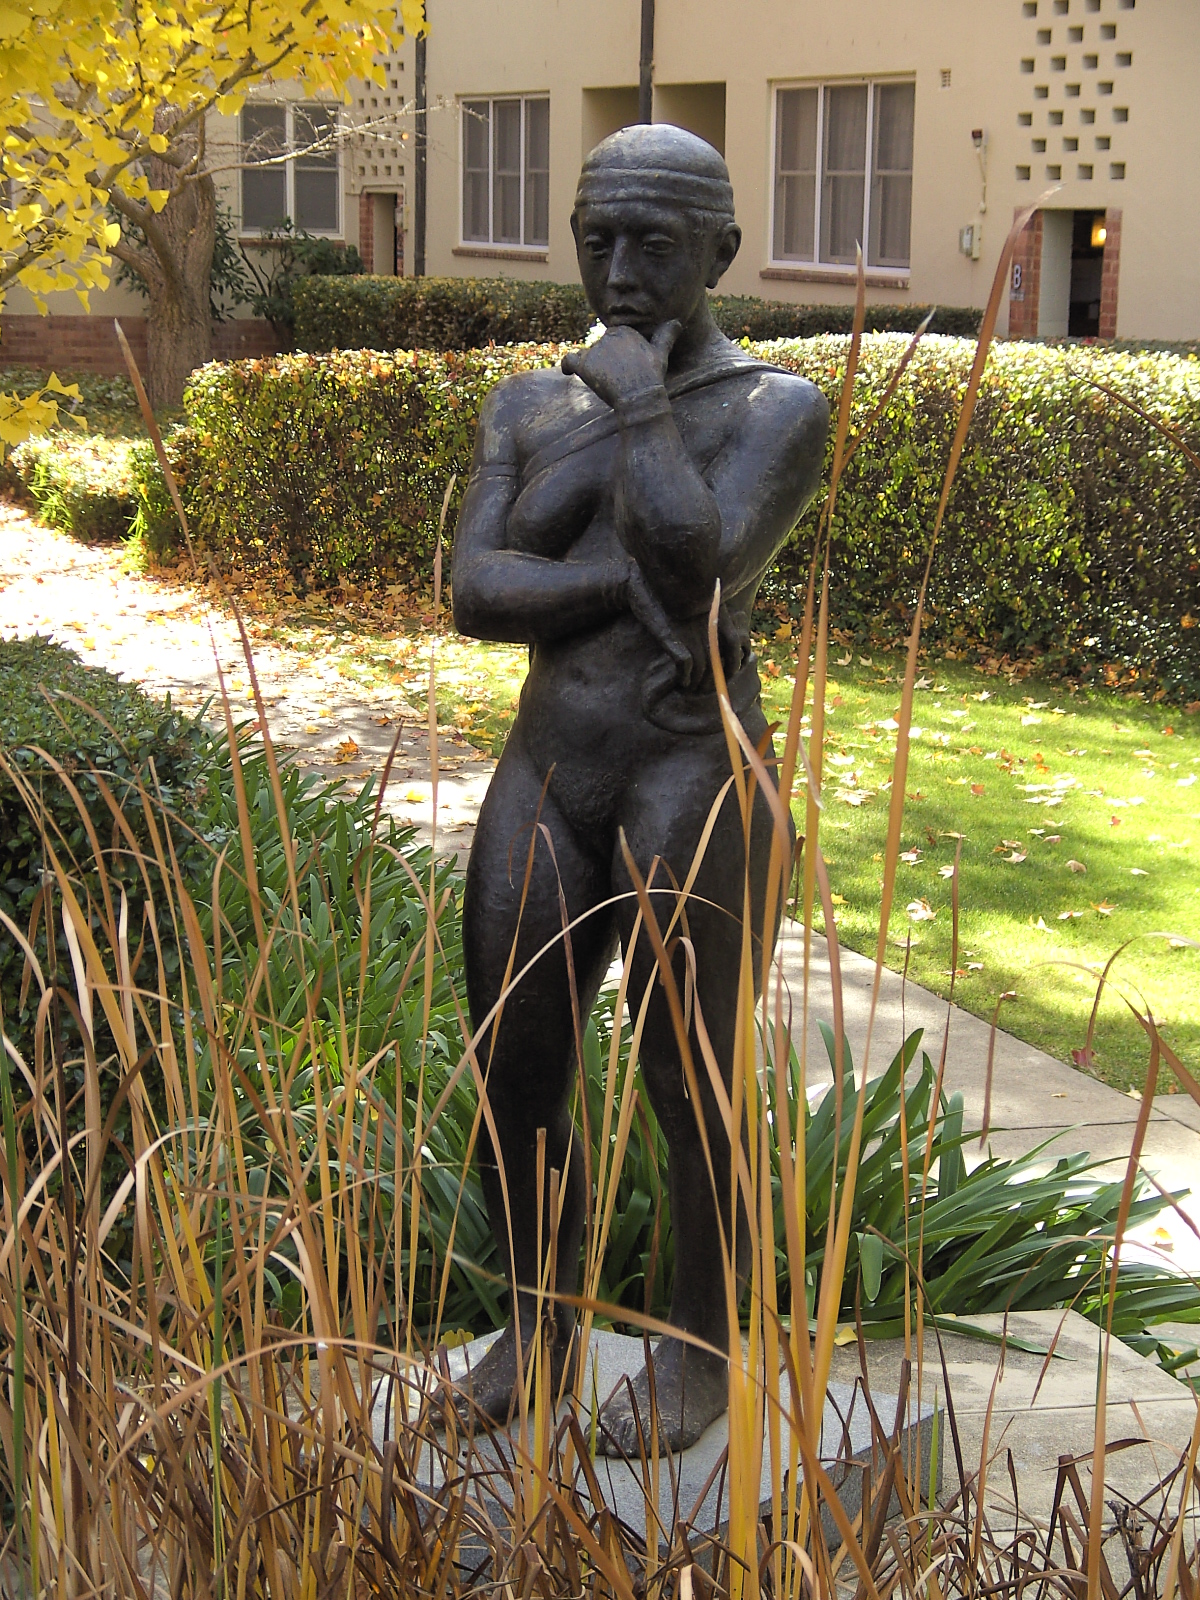 ANTE DABRO - STANDING FIGURE, (1981-82); 3/4-TO-FULL LIFE SIZE BRONZE. BRONZE STATUE, CONTEMPLATION 1981-82, BY ARTIST ANTE DABRO, IN THE COURTYARD OF UNIVERSITY HOUSE, AUSTRALIAN NATIONAL UNIVERSITY; A GIFT OF THE ARTIST, 2004.